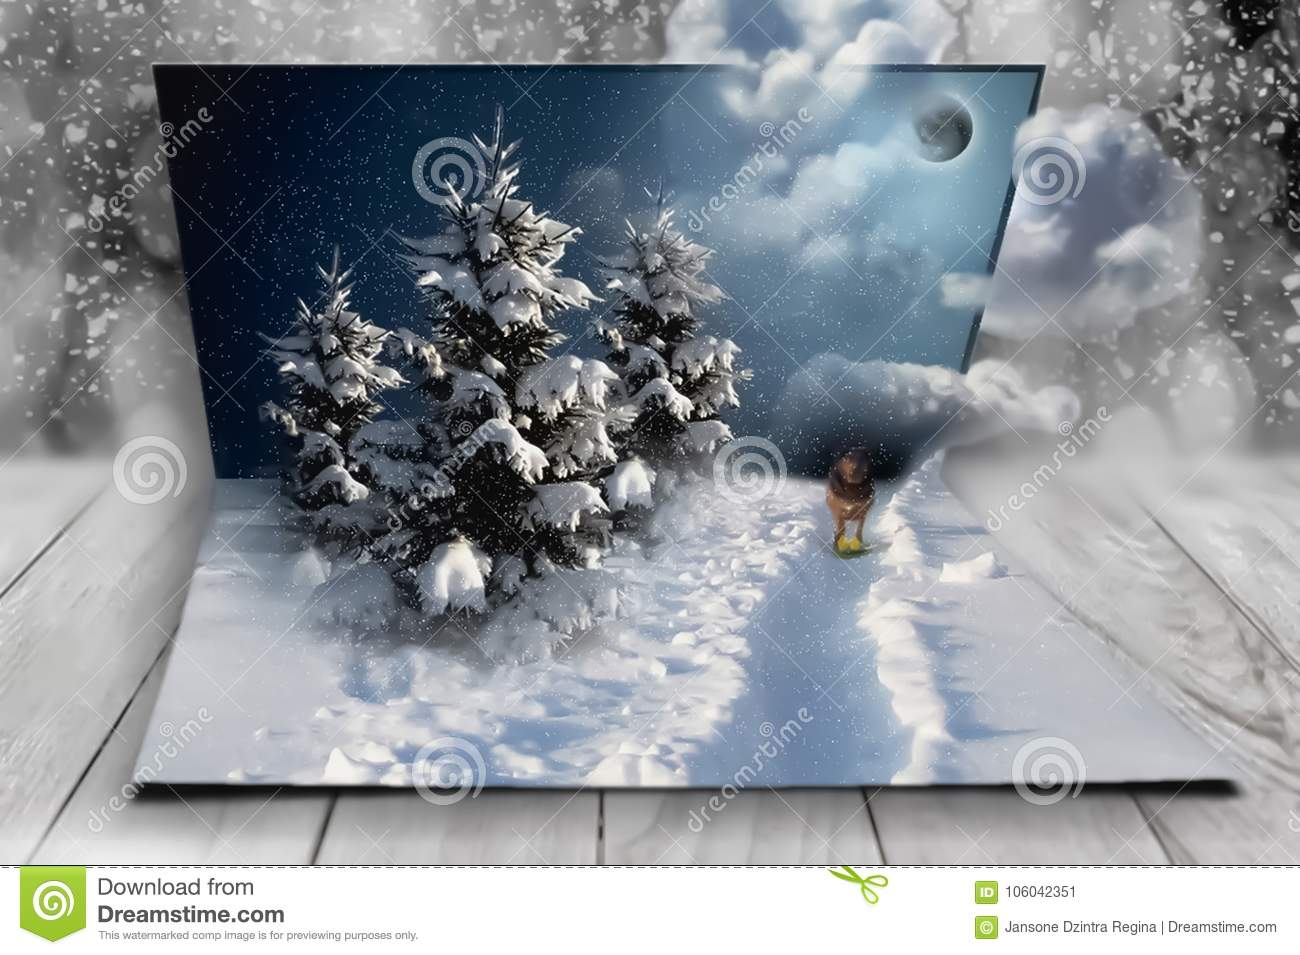 New year fantasy in my sweet dreams christmas stock illustration greetings to friends and relatives for you new year fantasy in my sweet dreams christmas m4hsunfo